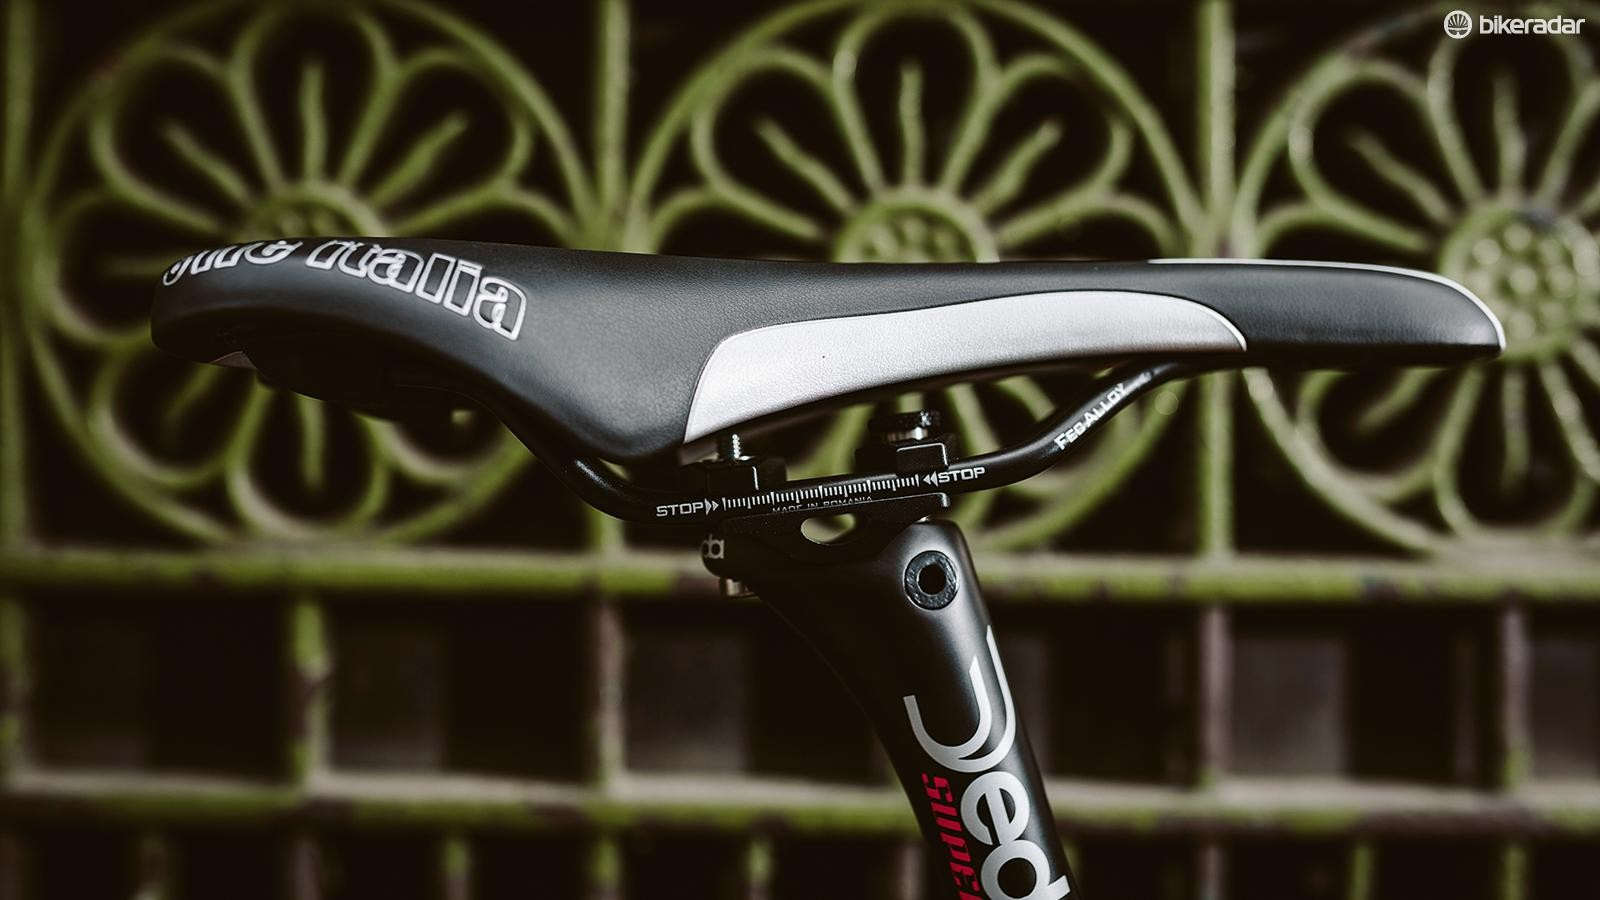 Using the BikeBuilder there are plenty of saddle options